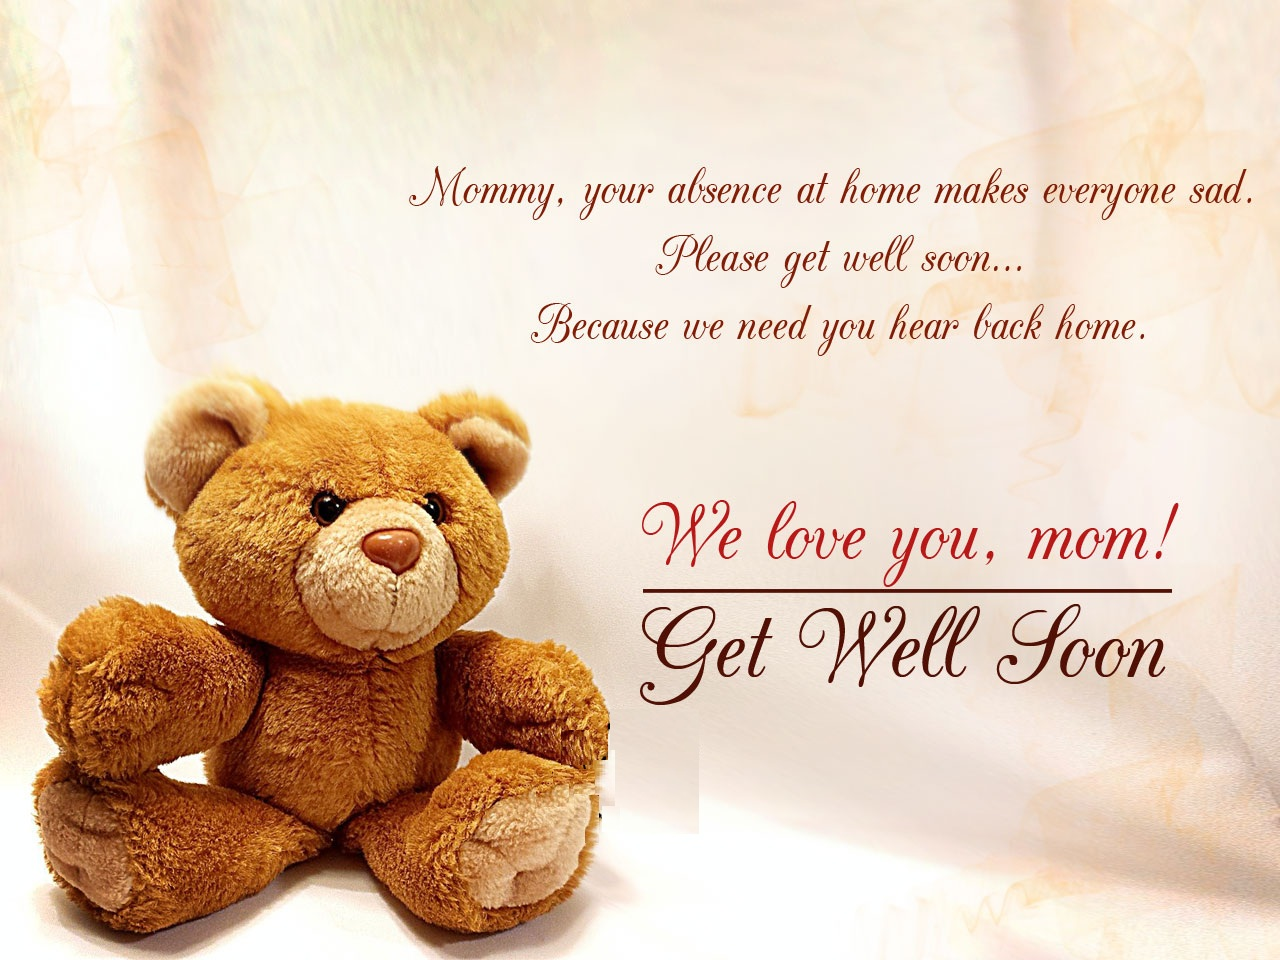 See You Soon Quotes Wallpapers Get Well Soon Mother Get Well Soon Mom